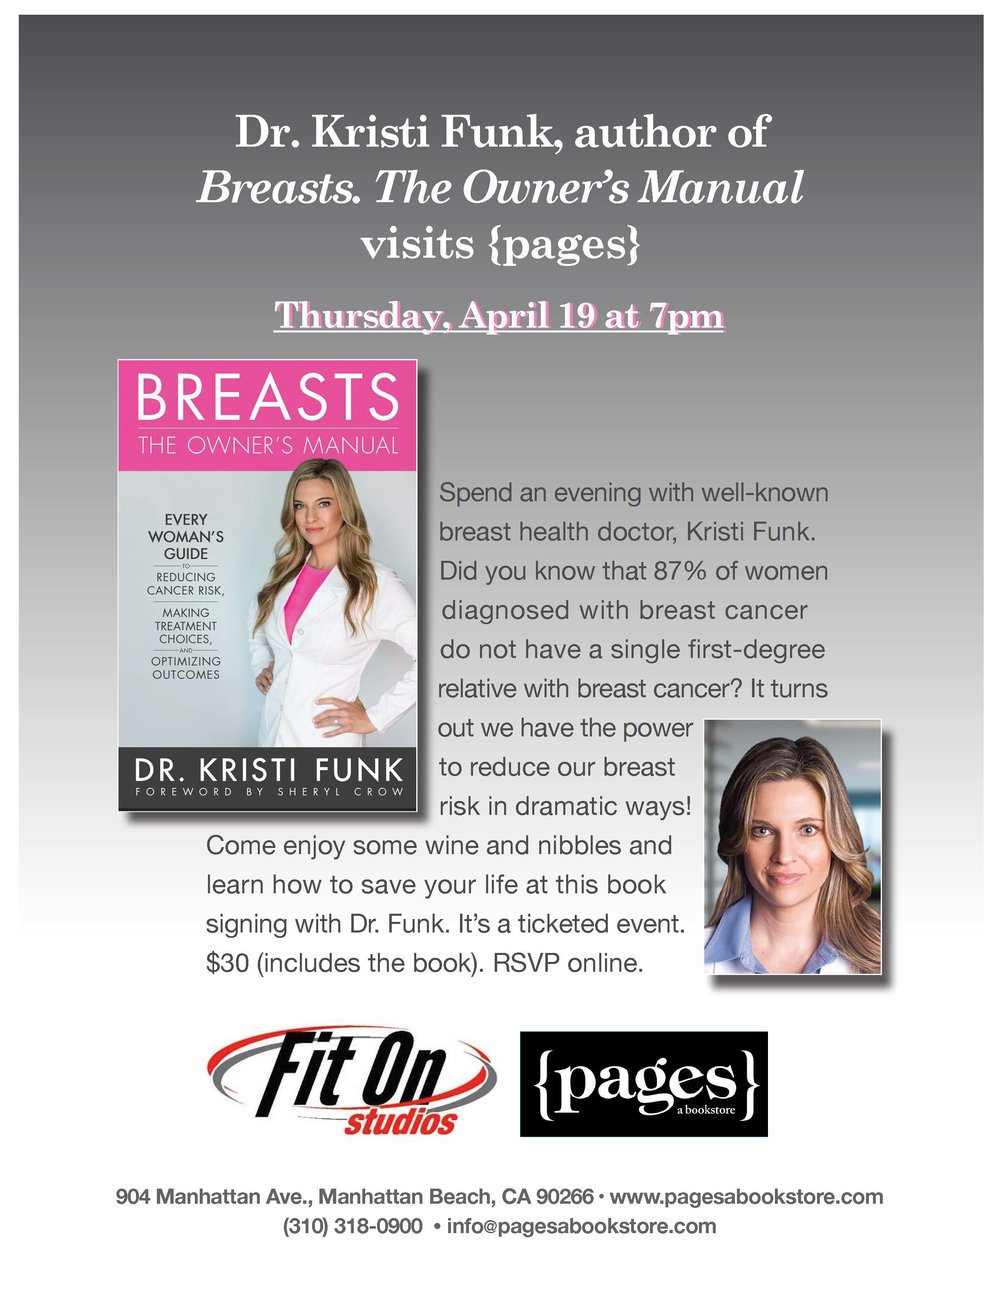 Dr. Kristi Funk, author of Breasts. The Owner's Manual. Spend an evening with well-known breast health doctor,Kristi Funk. Did you know that 87% of women diagnosed with breast cancer do not have a single first degree relative with breast cancer?It turns out we have the power to reduce our breast risk in dramatic ways!Come enjoy some wine and nibbles and learn how to save your life at this book signing with Dr. Funk.It's a ticketed event.$30 (includes the book). RSVP online. -